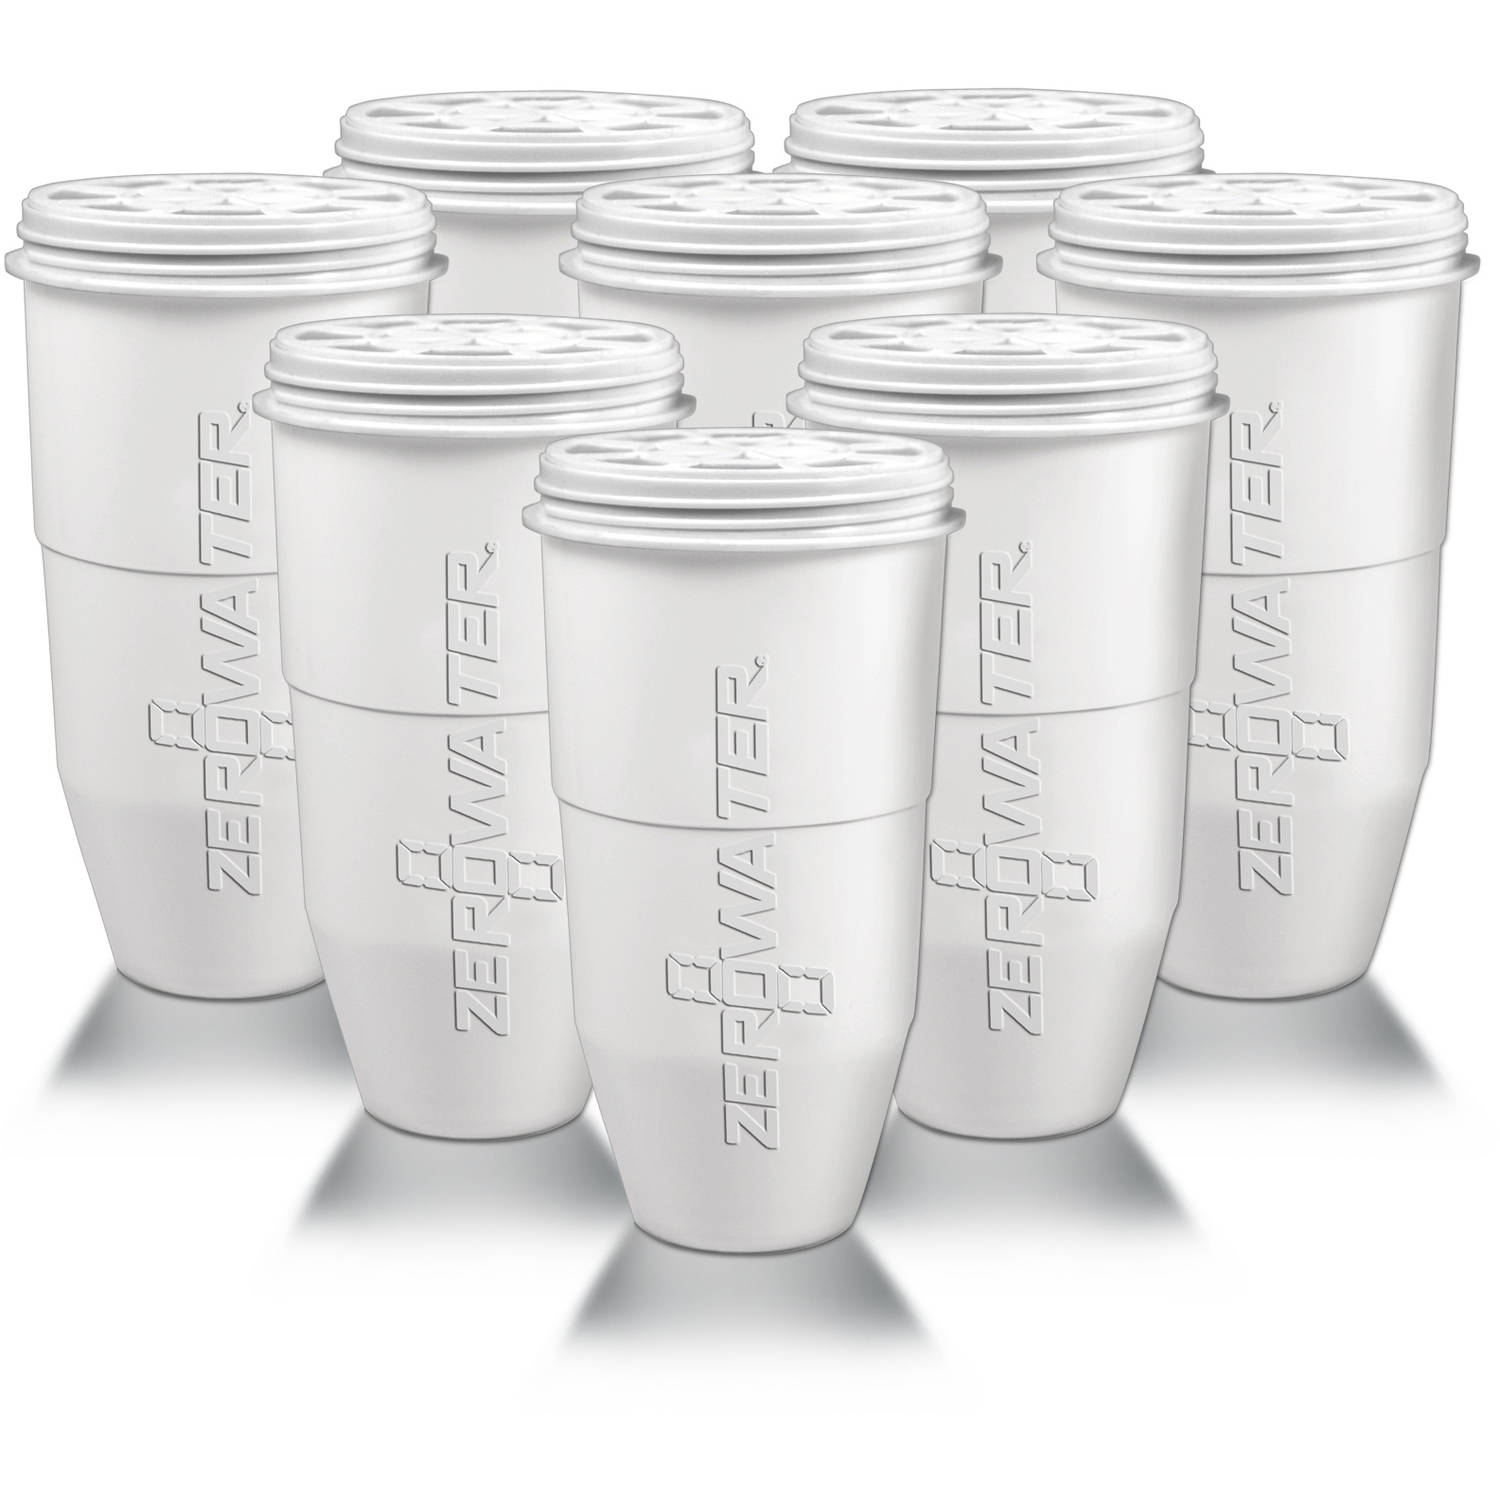 ZeroWater Replacement Filter for Pitchers, 8-Pack